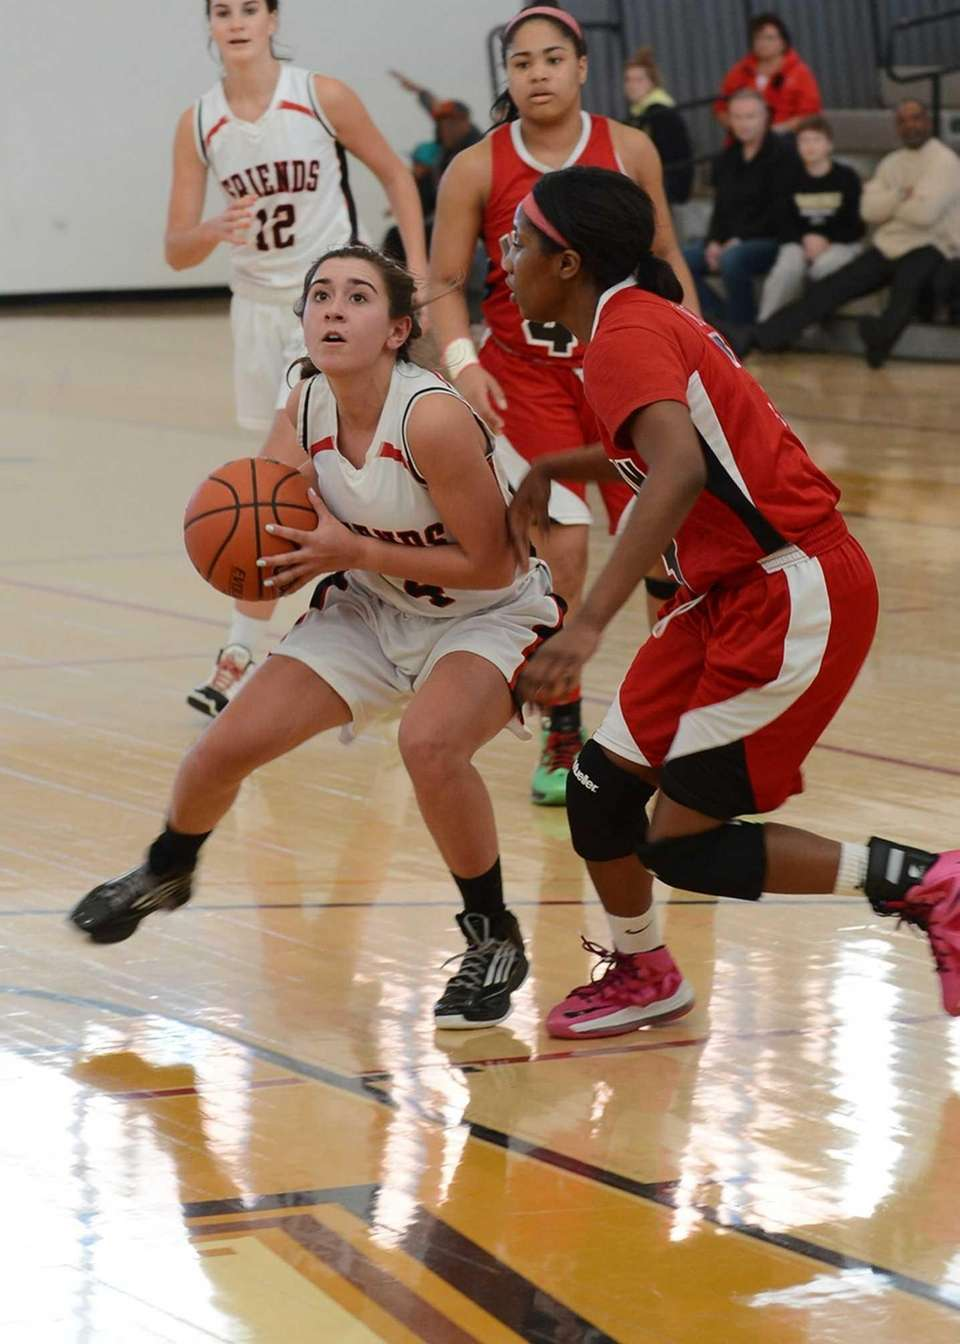 Freind's Madeline O'Brien looks to shoot during the